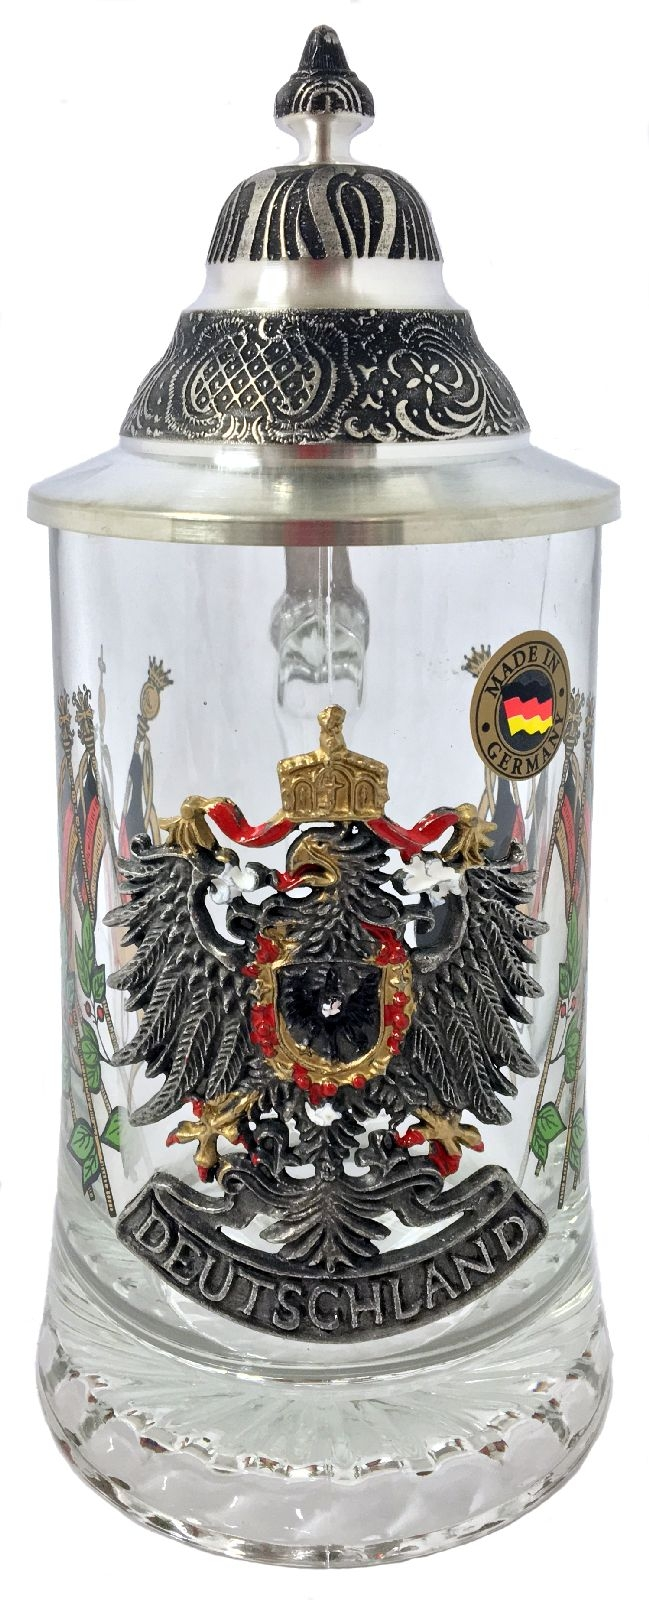 Deutschland Germany Eagle and Flags Pewter Lid Glass European Beer Stein .4 L